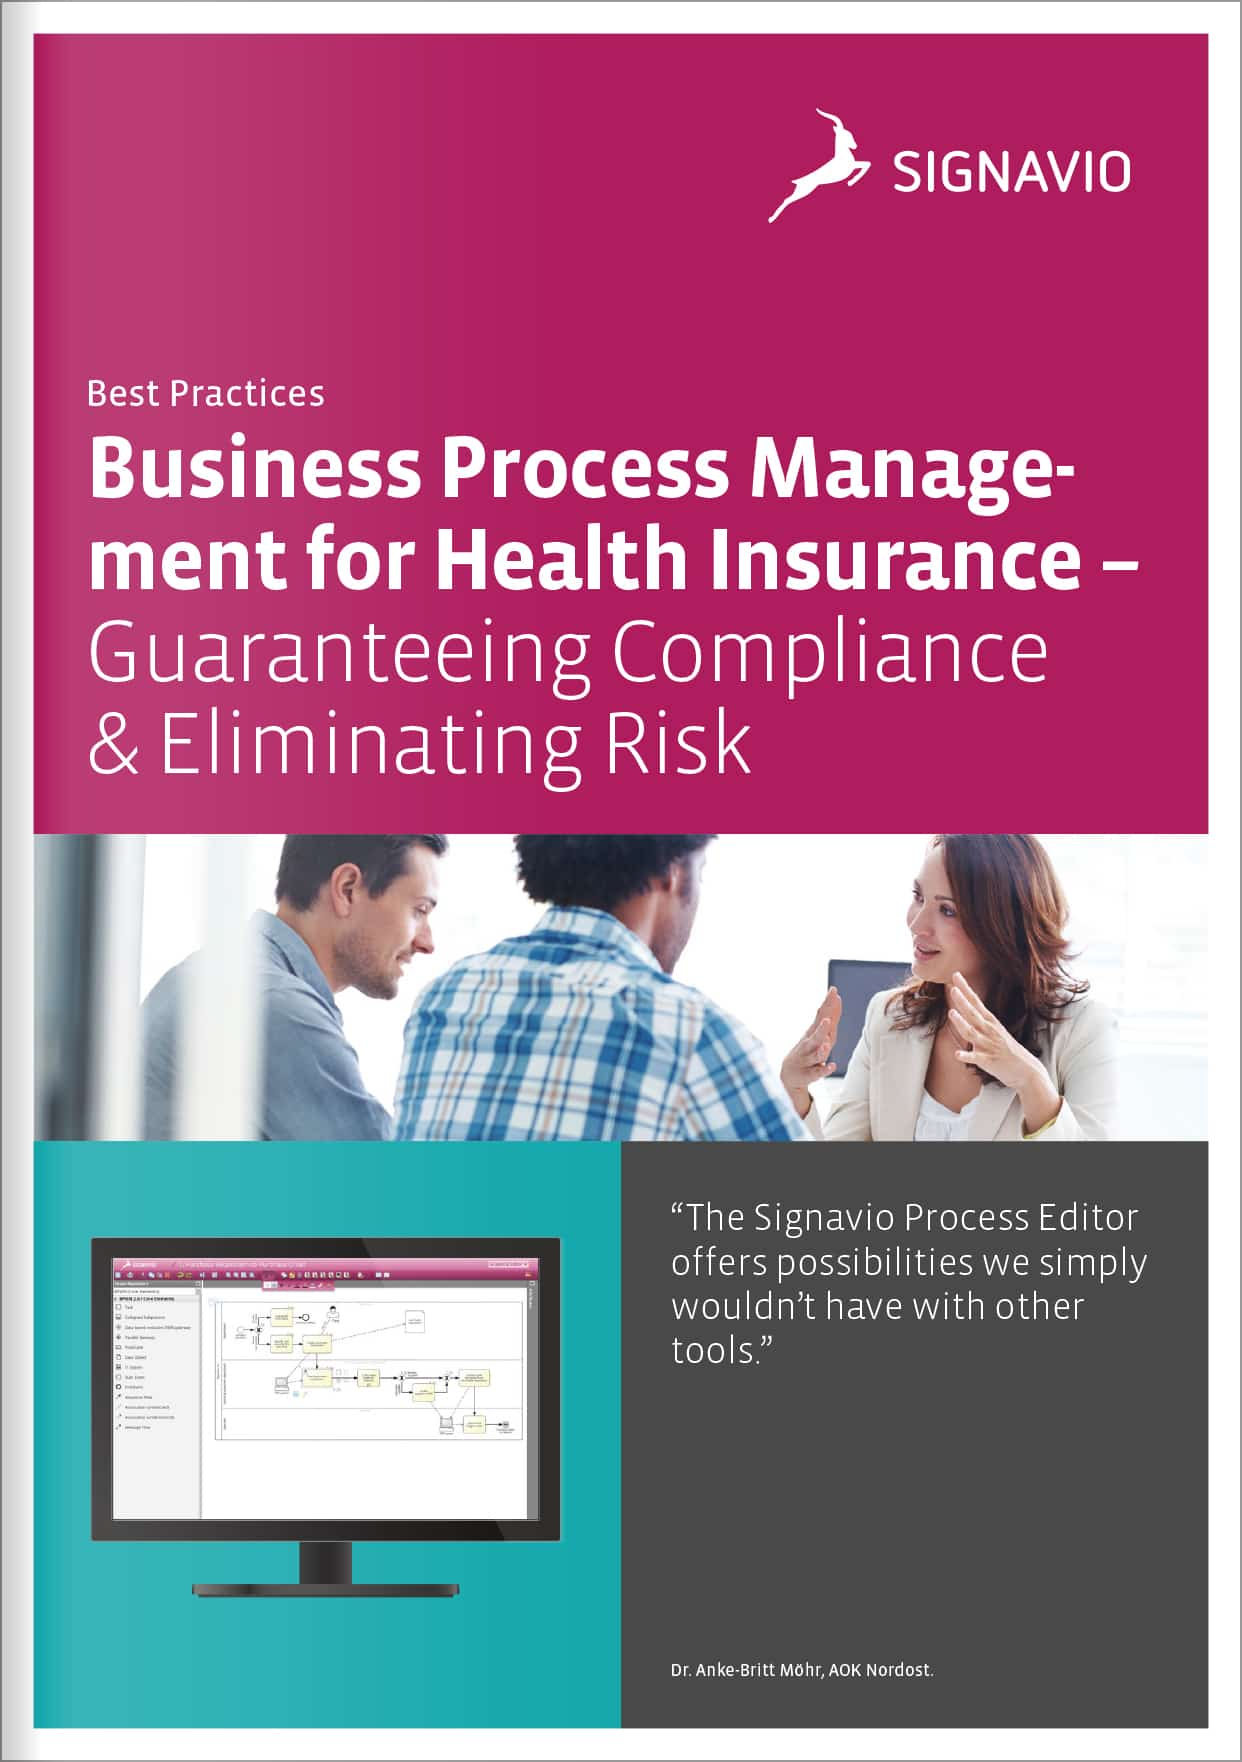 business-process-management-for-health-insurance-cover